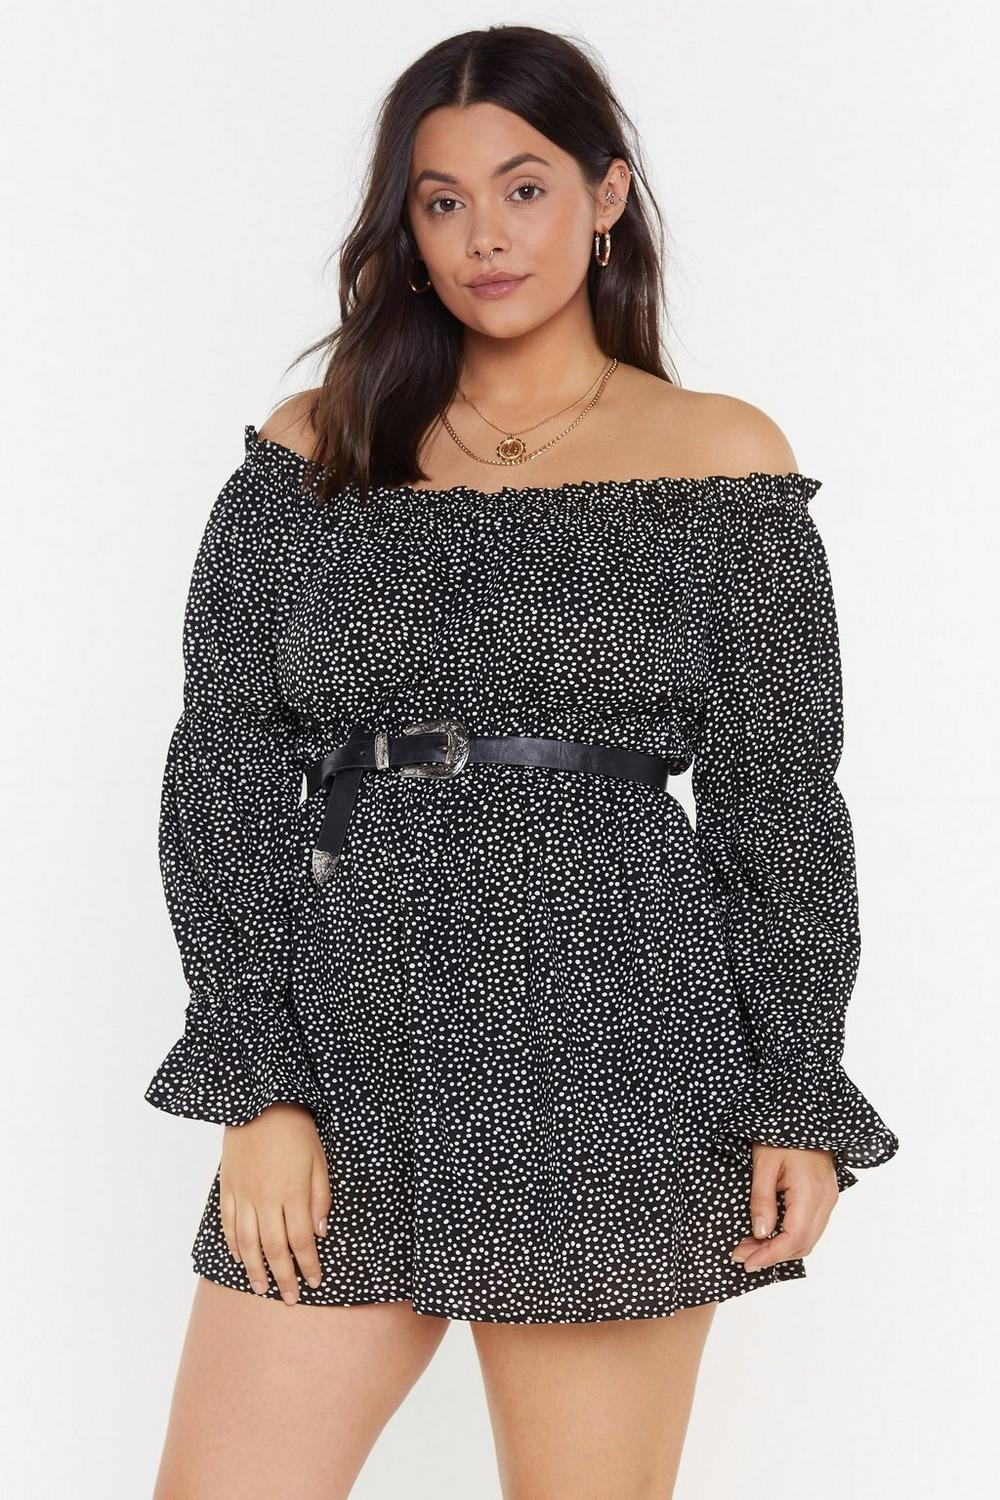 It's Spot Over Polka Dot Off The Shoulder Plus Dress by Nasty Gal